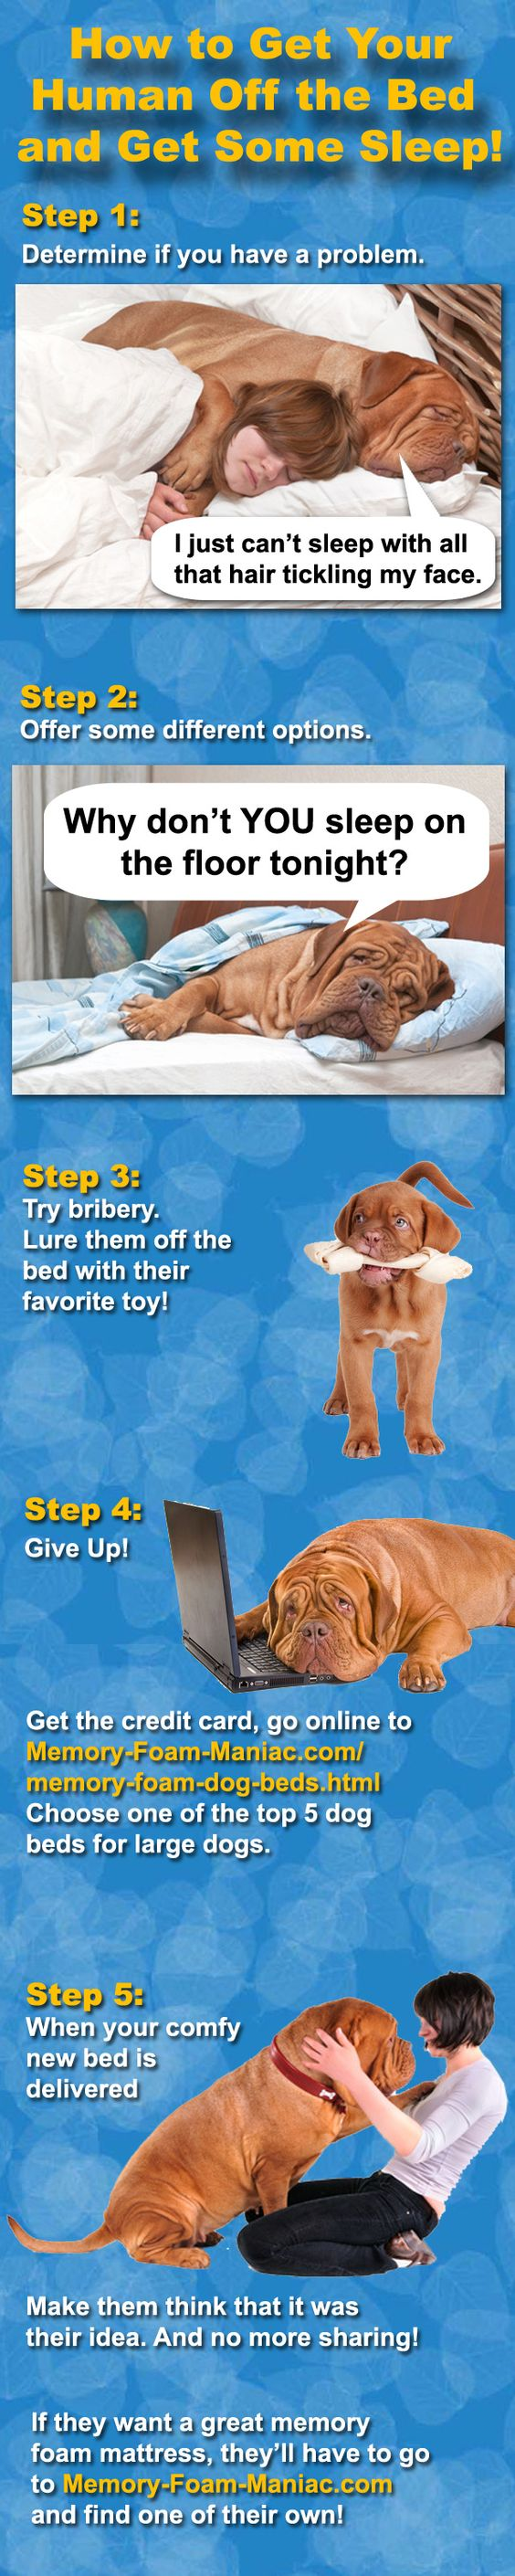 Memory foam dog beds for large dogs. http://www.memory-foam-maniac.com/ memory-foam-dog-beds.html#DogBeds-BIG | Memory-Foam-Maniac.com | Pinterest  | Betten, ...